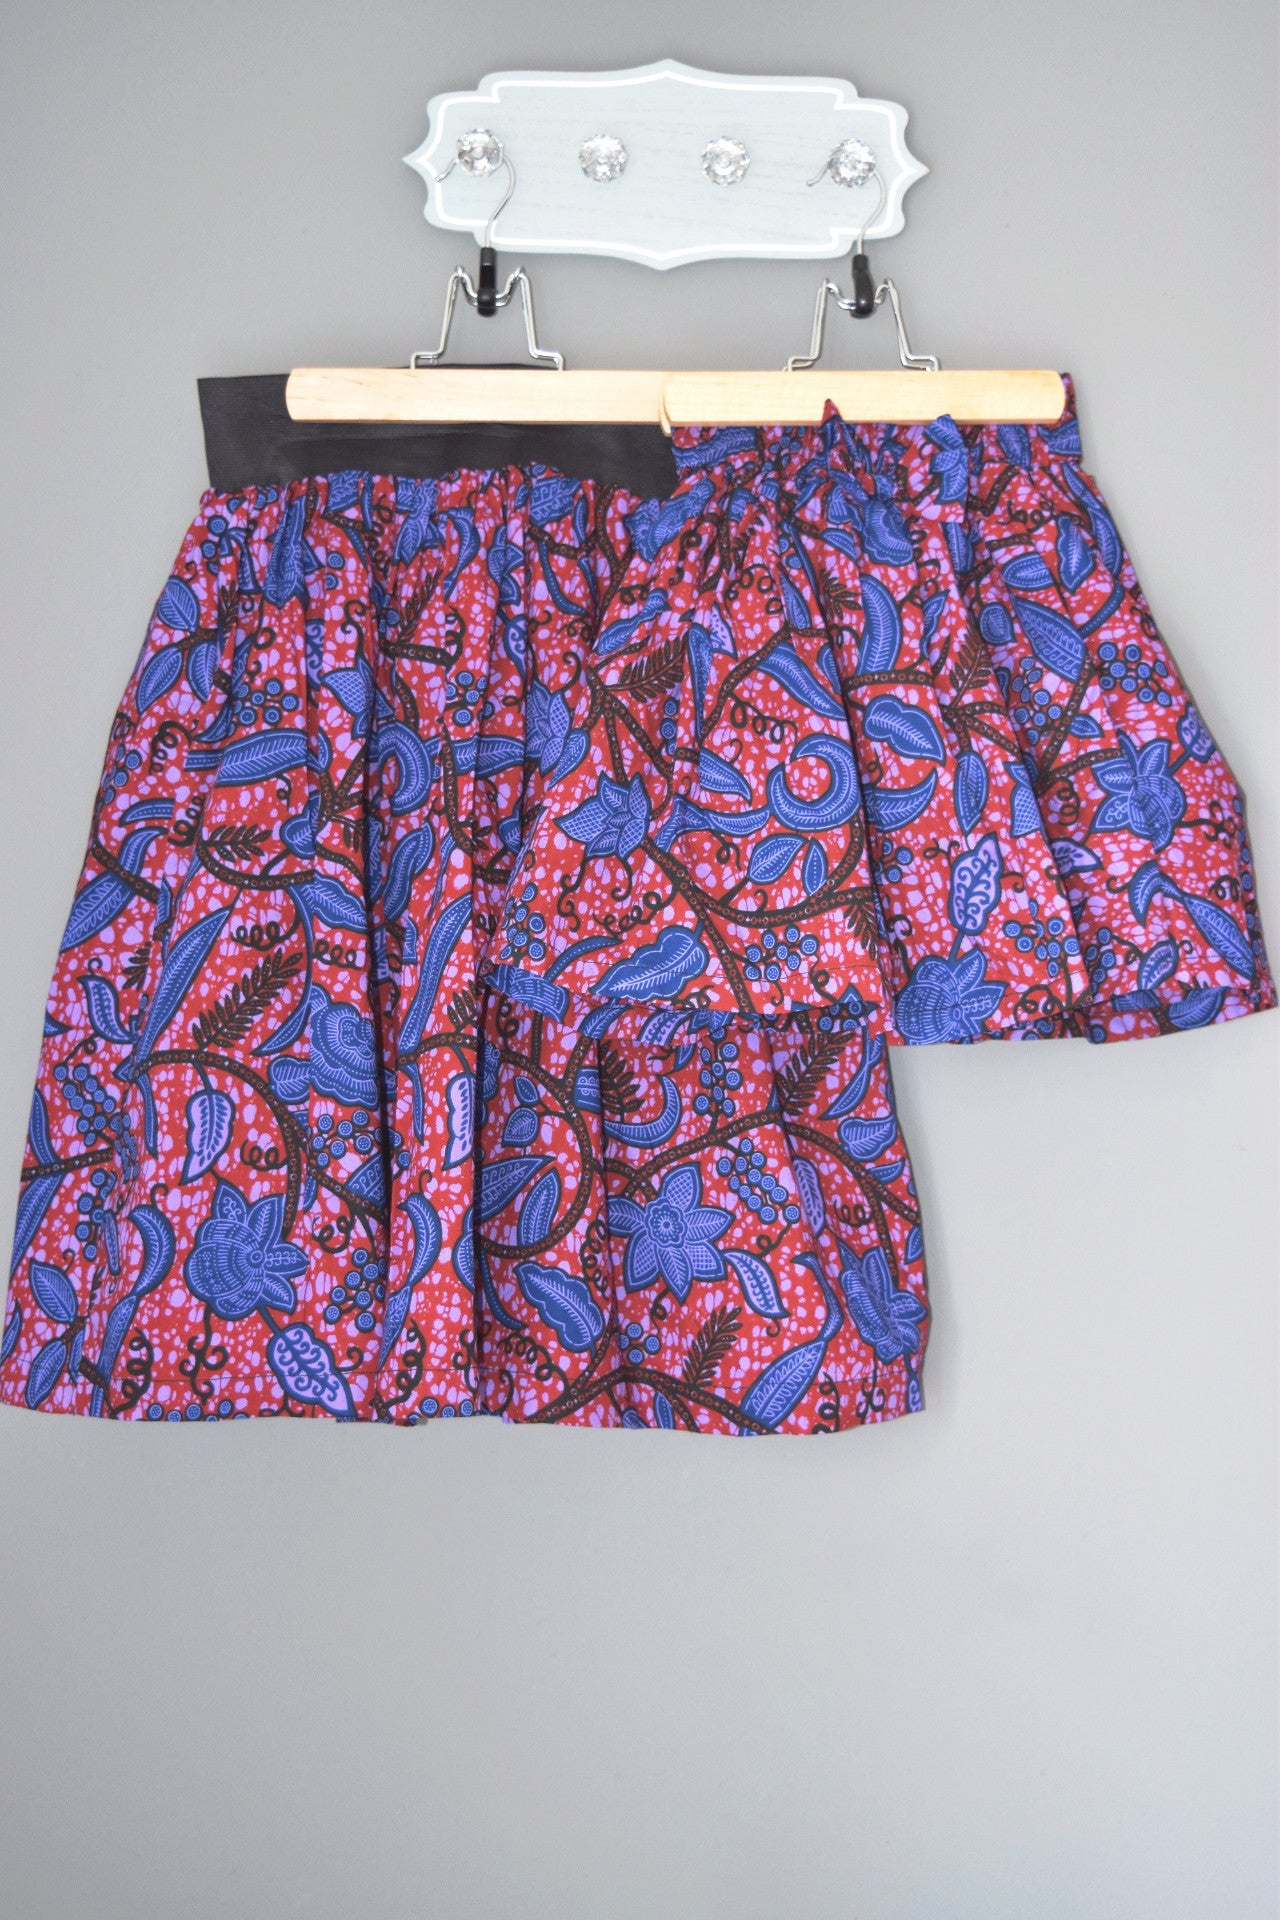 OLA ankara knee-length skirt in Red and Blue vine print